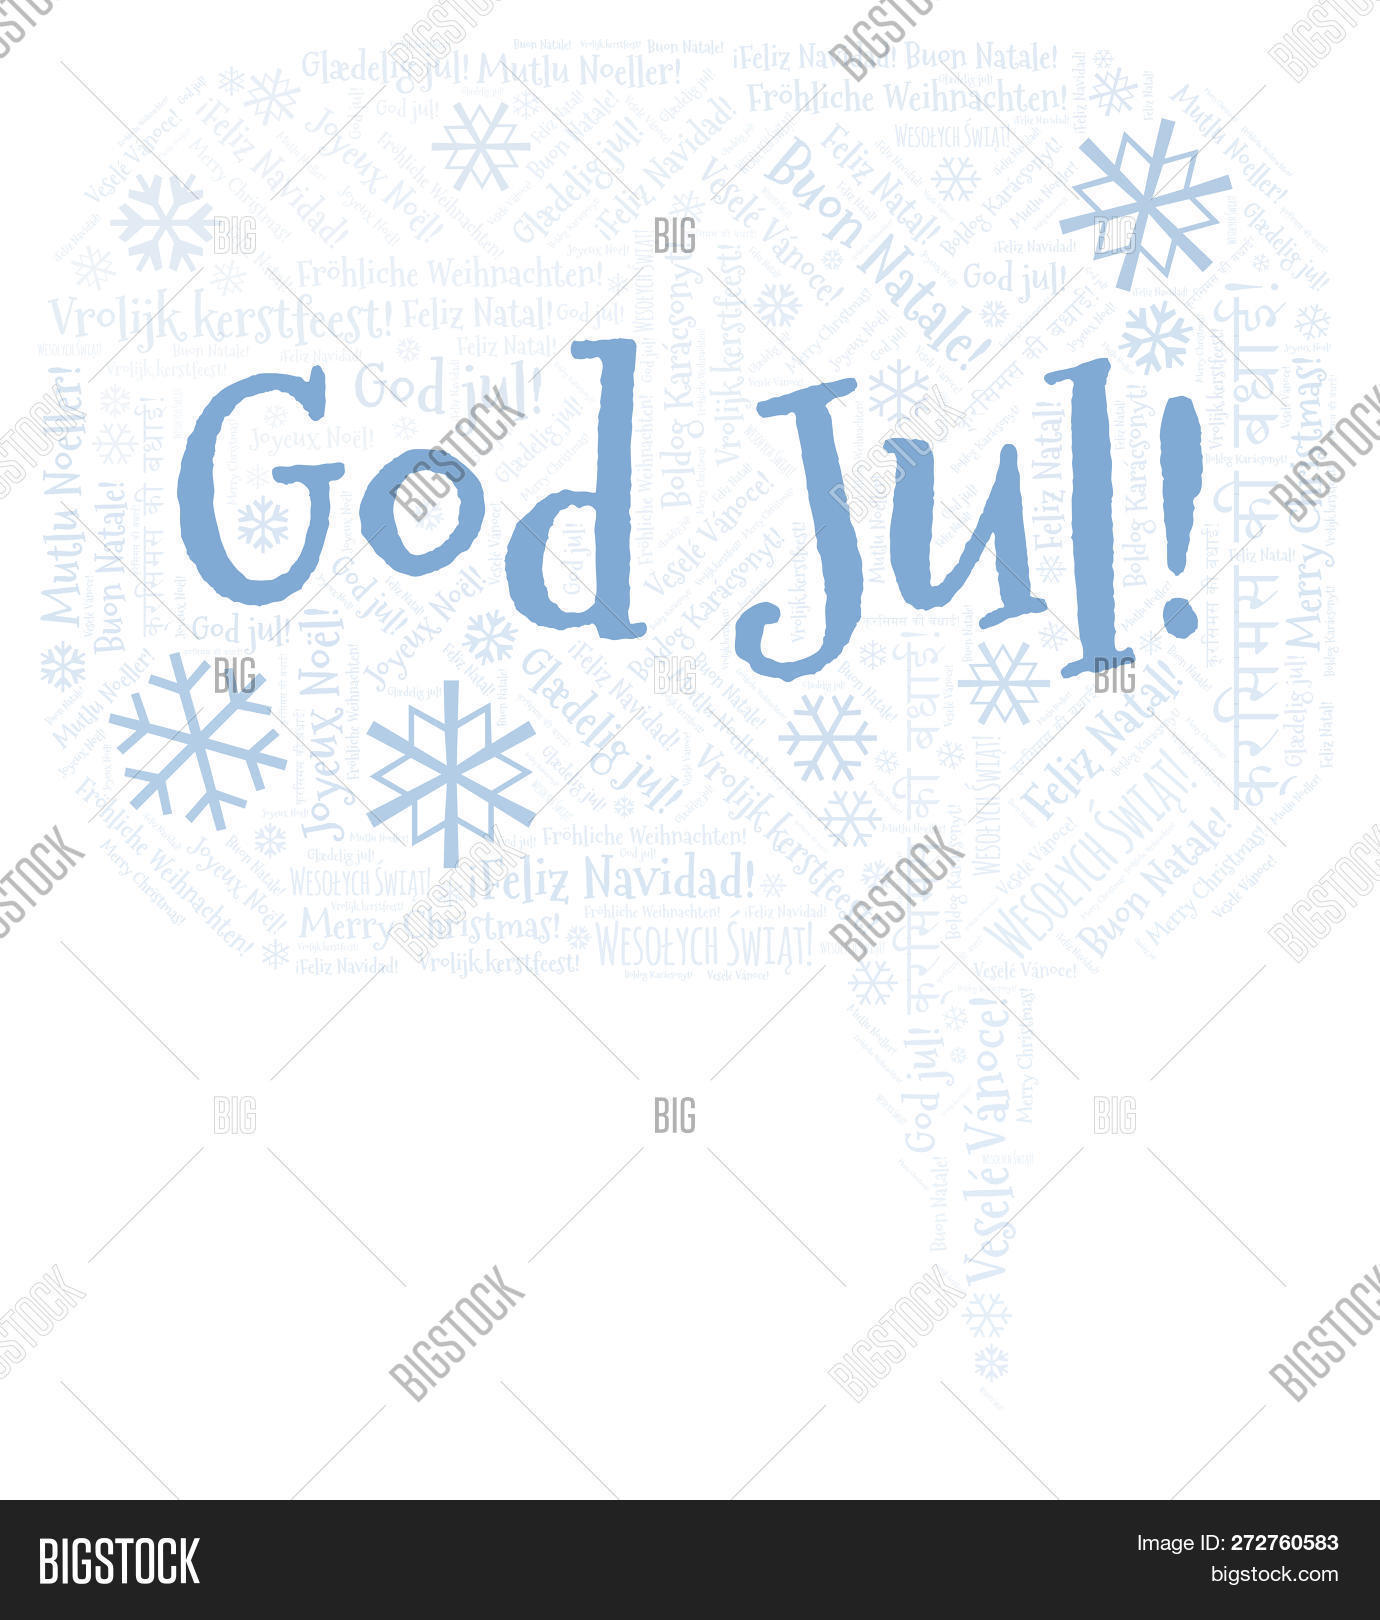 God Jul Word Cloud Image Photo Free Trial Bigstock